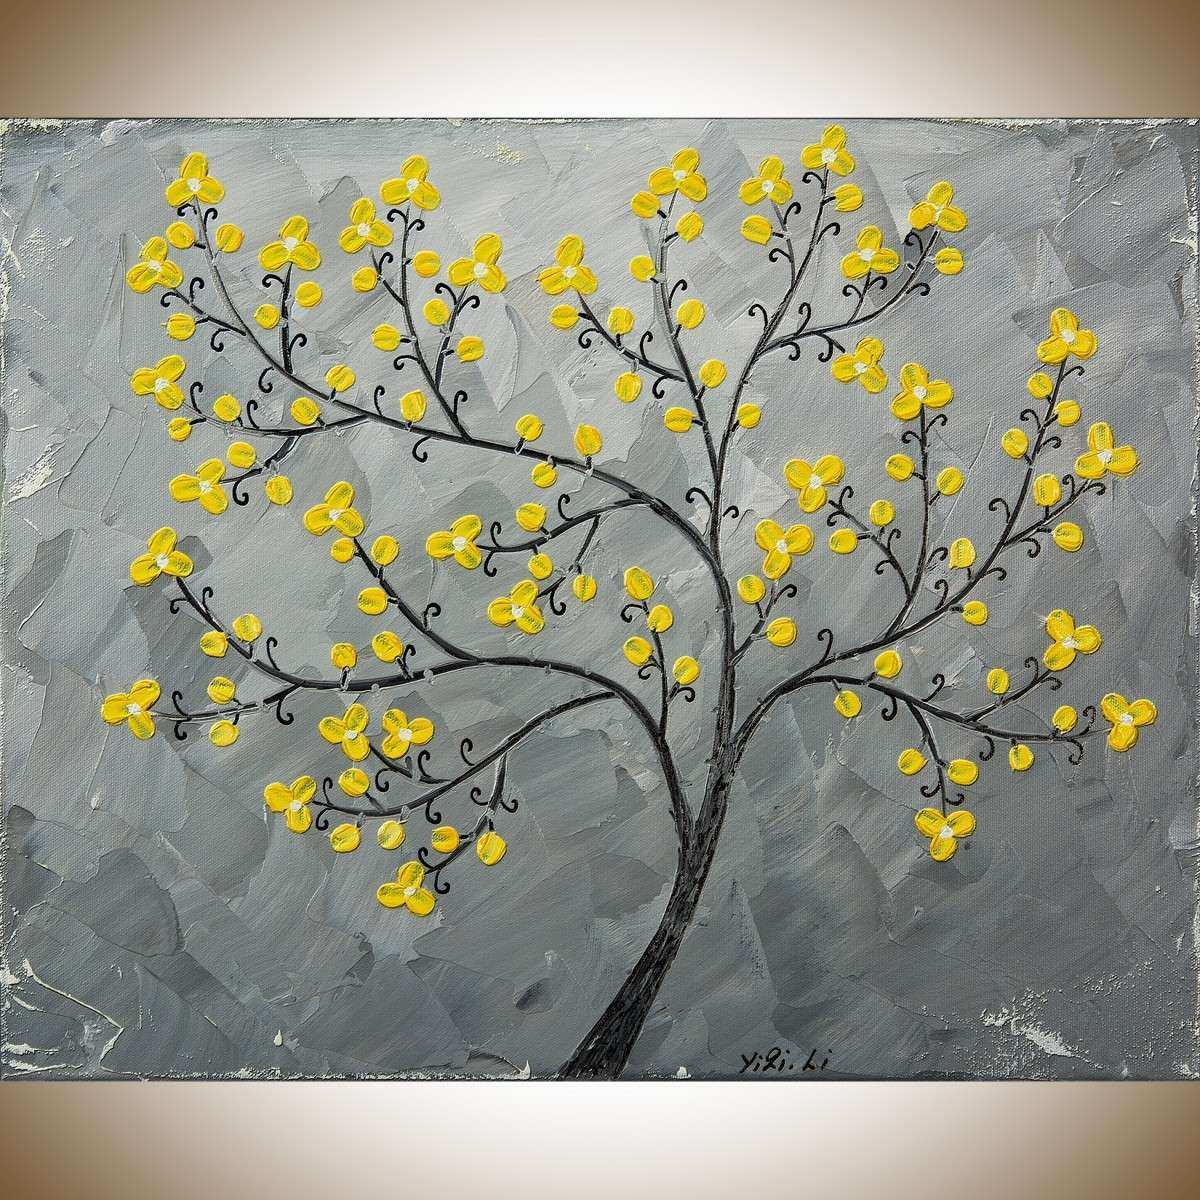 "Yellow Blossoms by QIQIGallery 16"" x 20"" Painting Original"